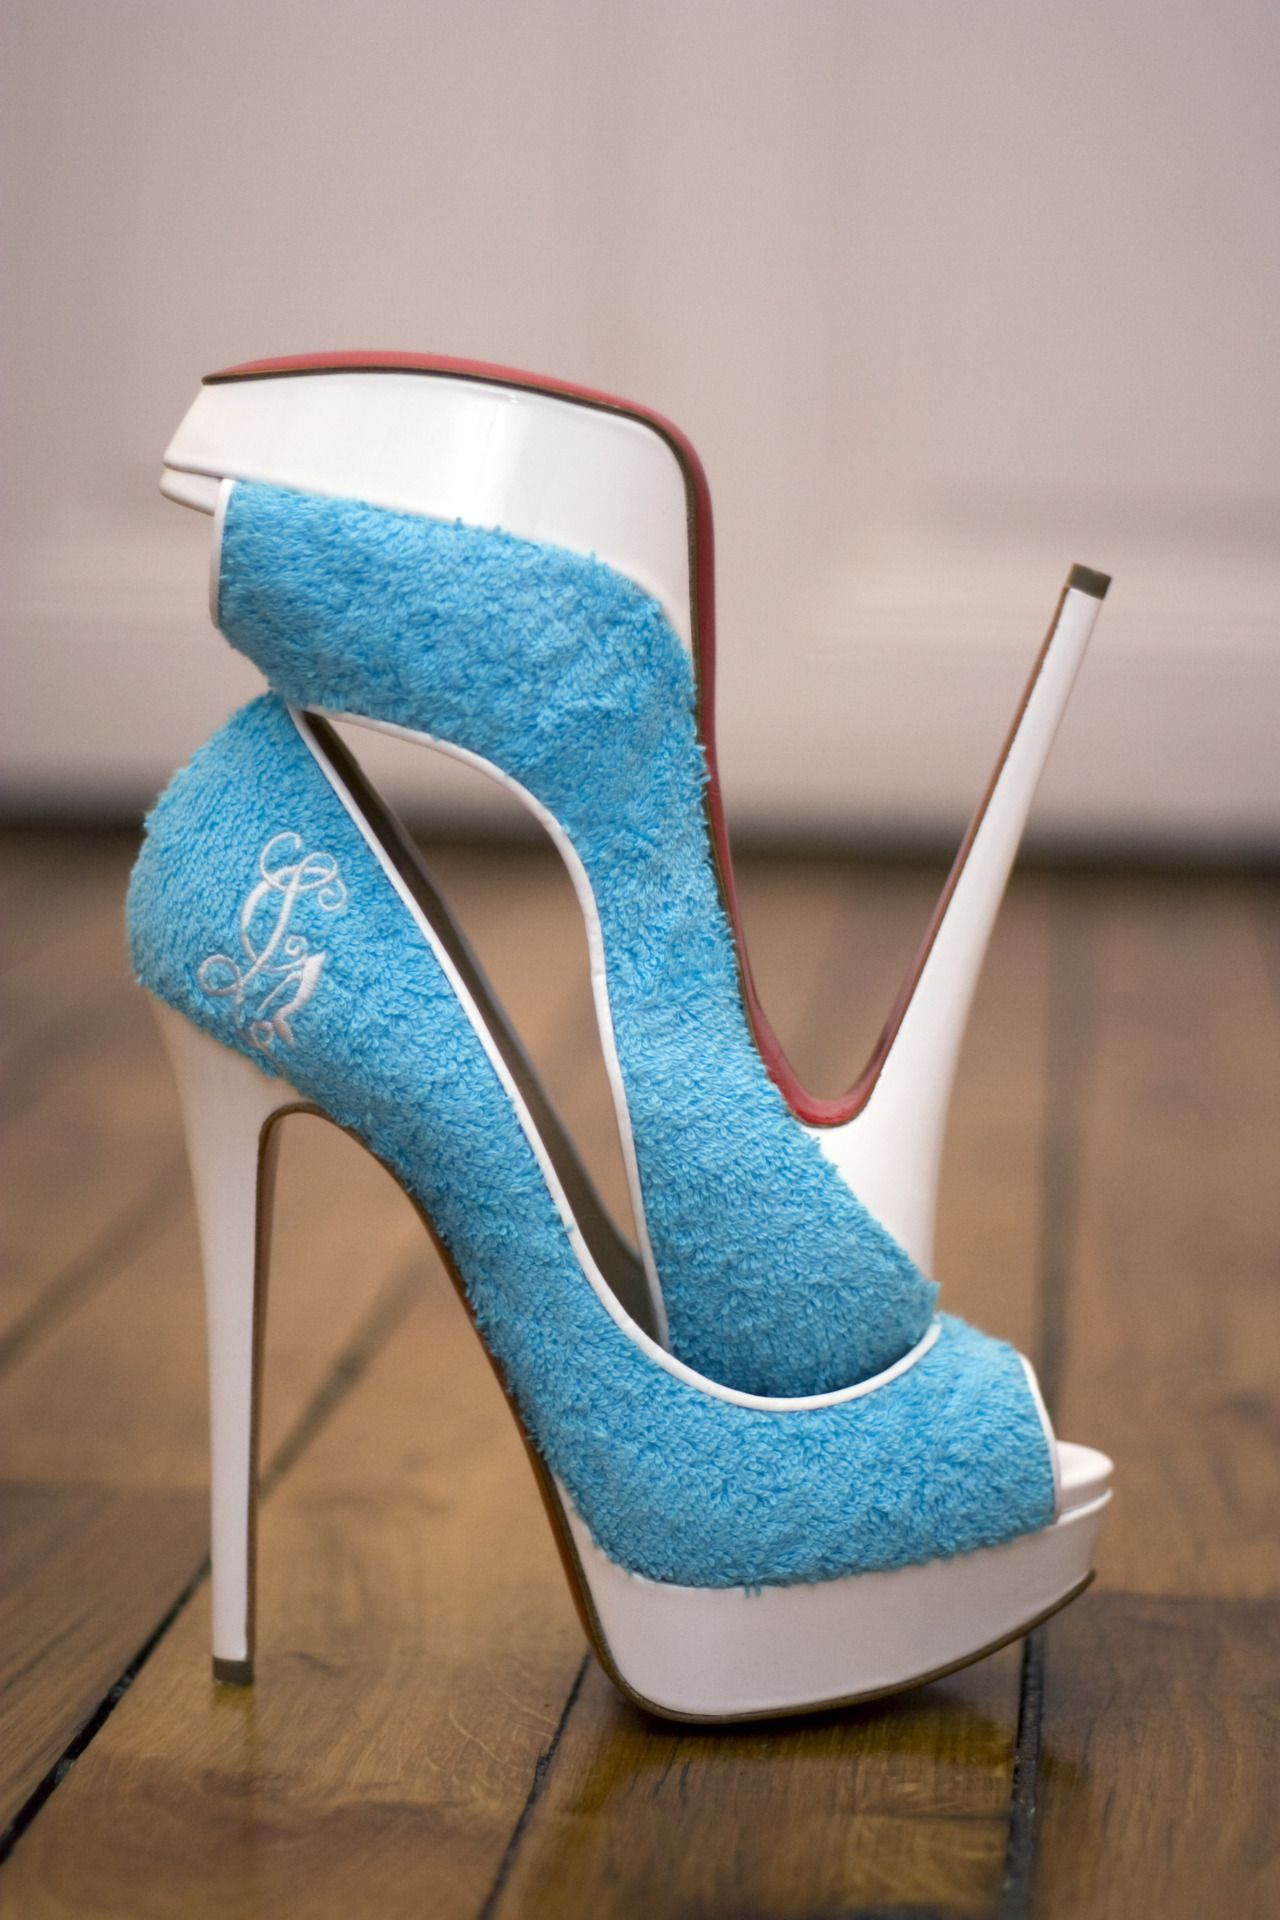 Reminds me of so many things...  Terry towelling...  Tennis balls... Smurfs.... Tiffany's....  Grover?    -Louboutin.